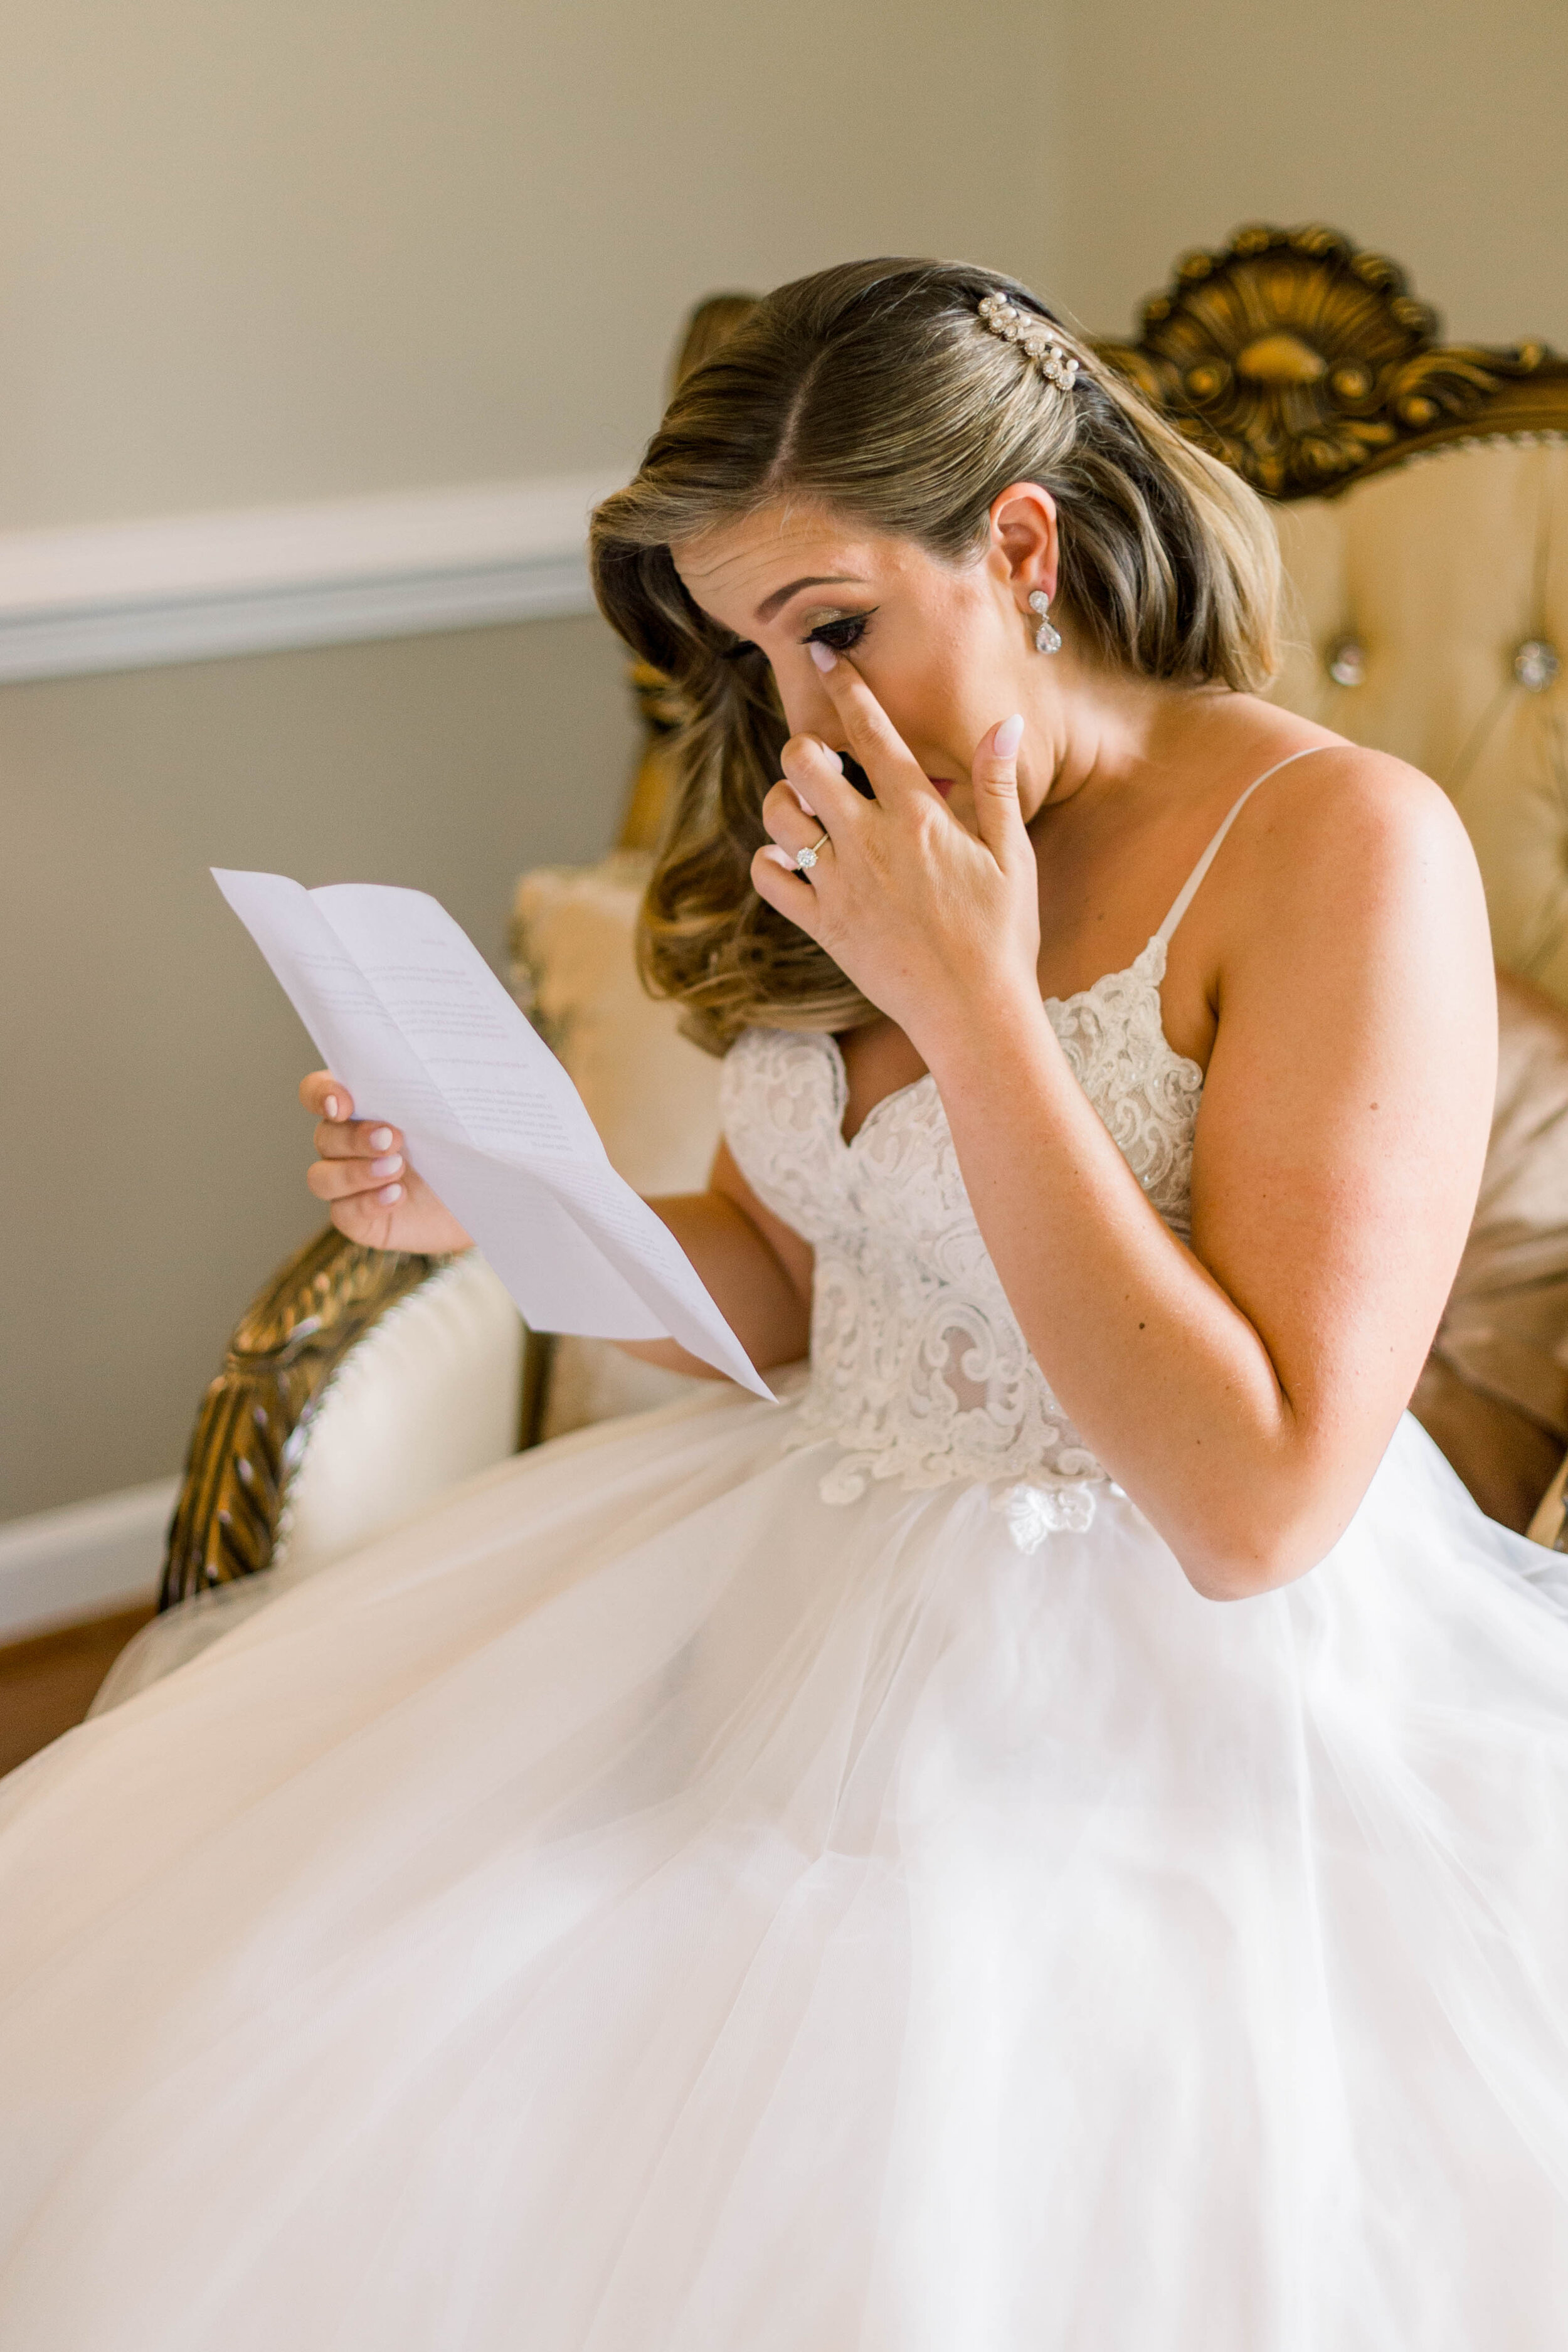 beautiful details + artfully crafted portraits + real moments = visual story. - What makes for a wedding gallery you will love now and 60 years down the road.